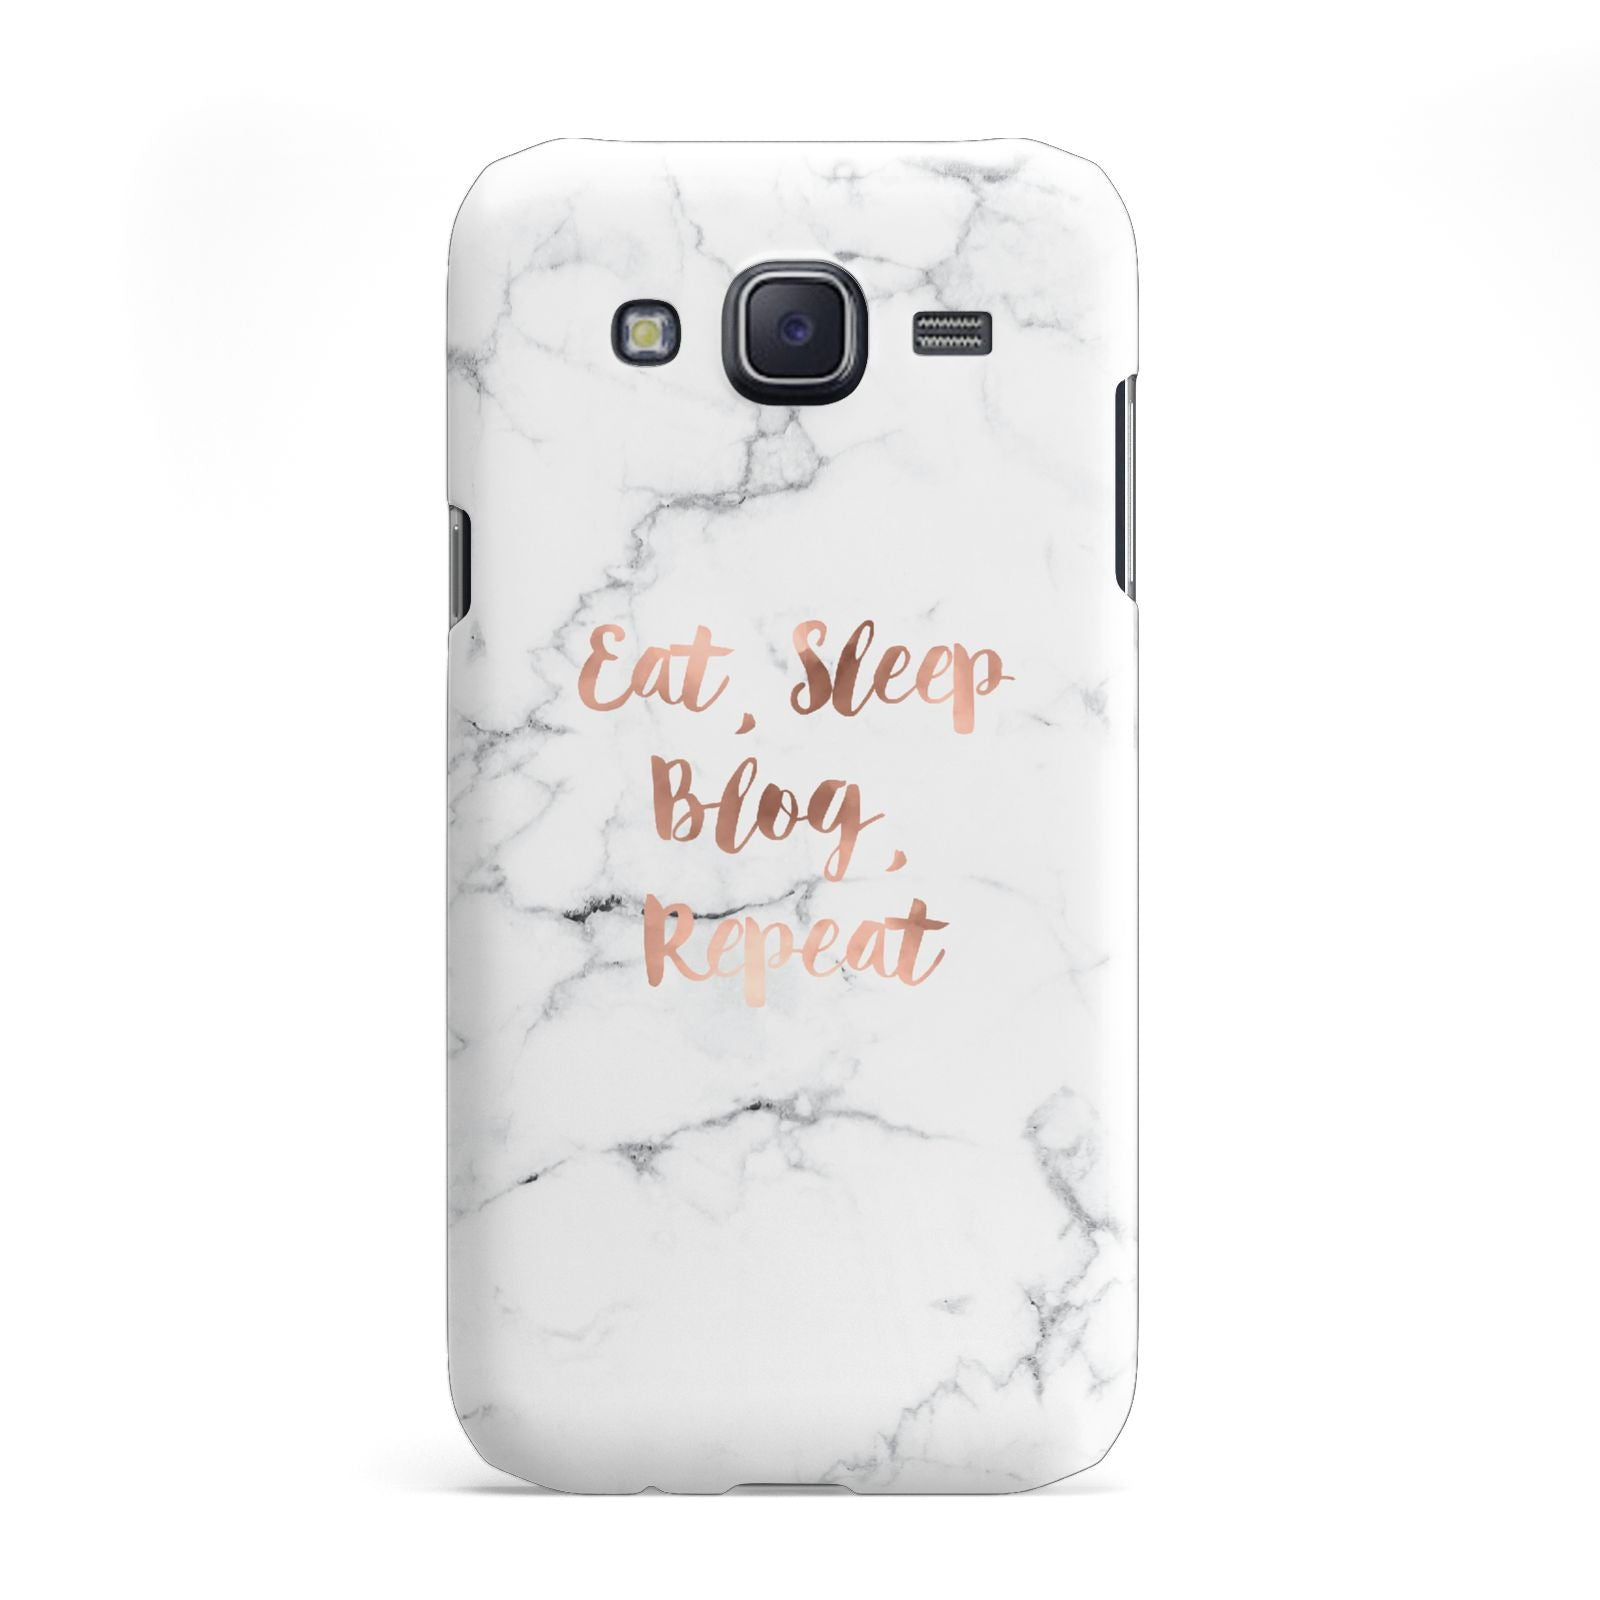 Eat Sleep Blog Repeat Marble Effect Samsung Galaxy J5 Case